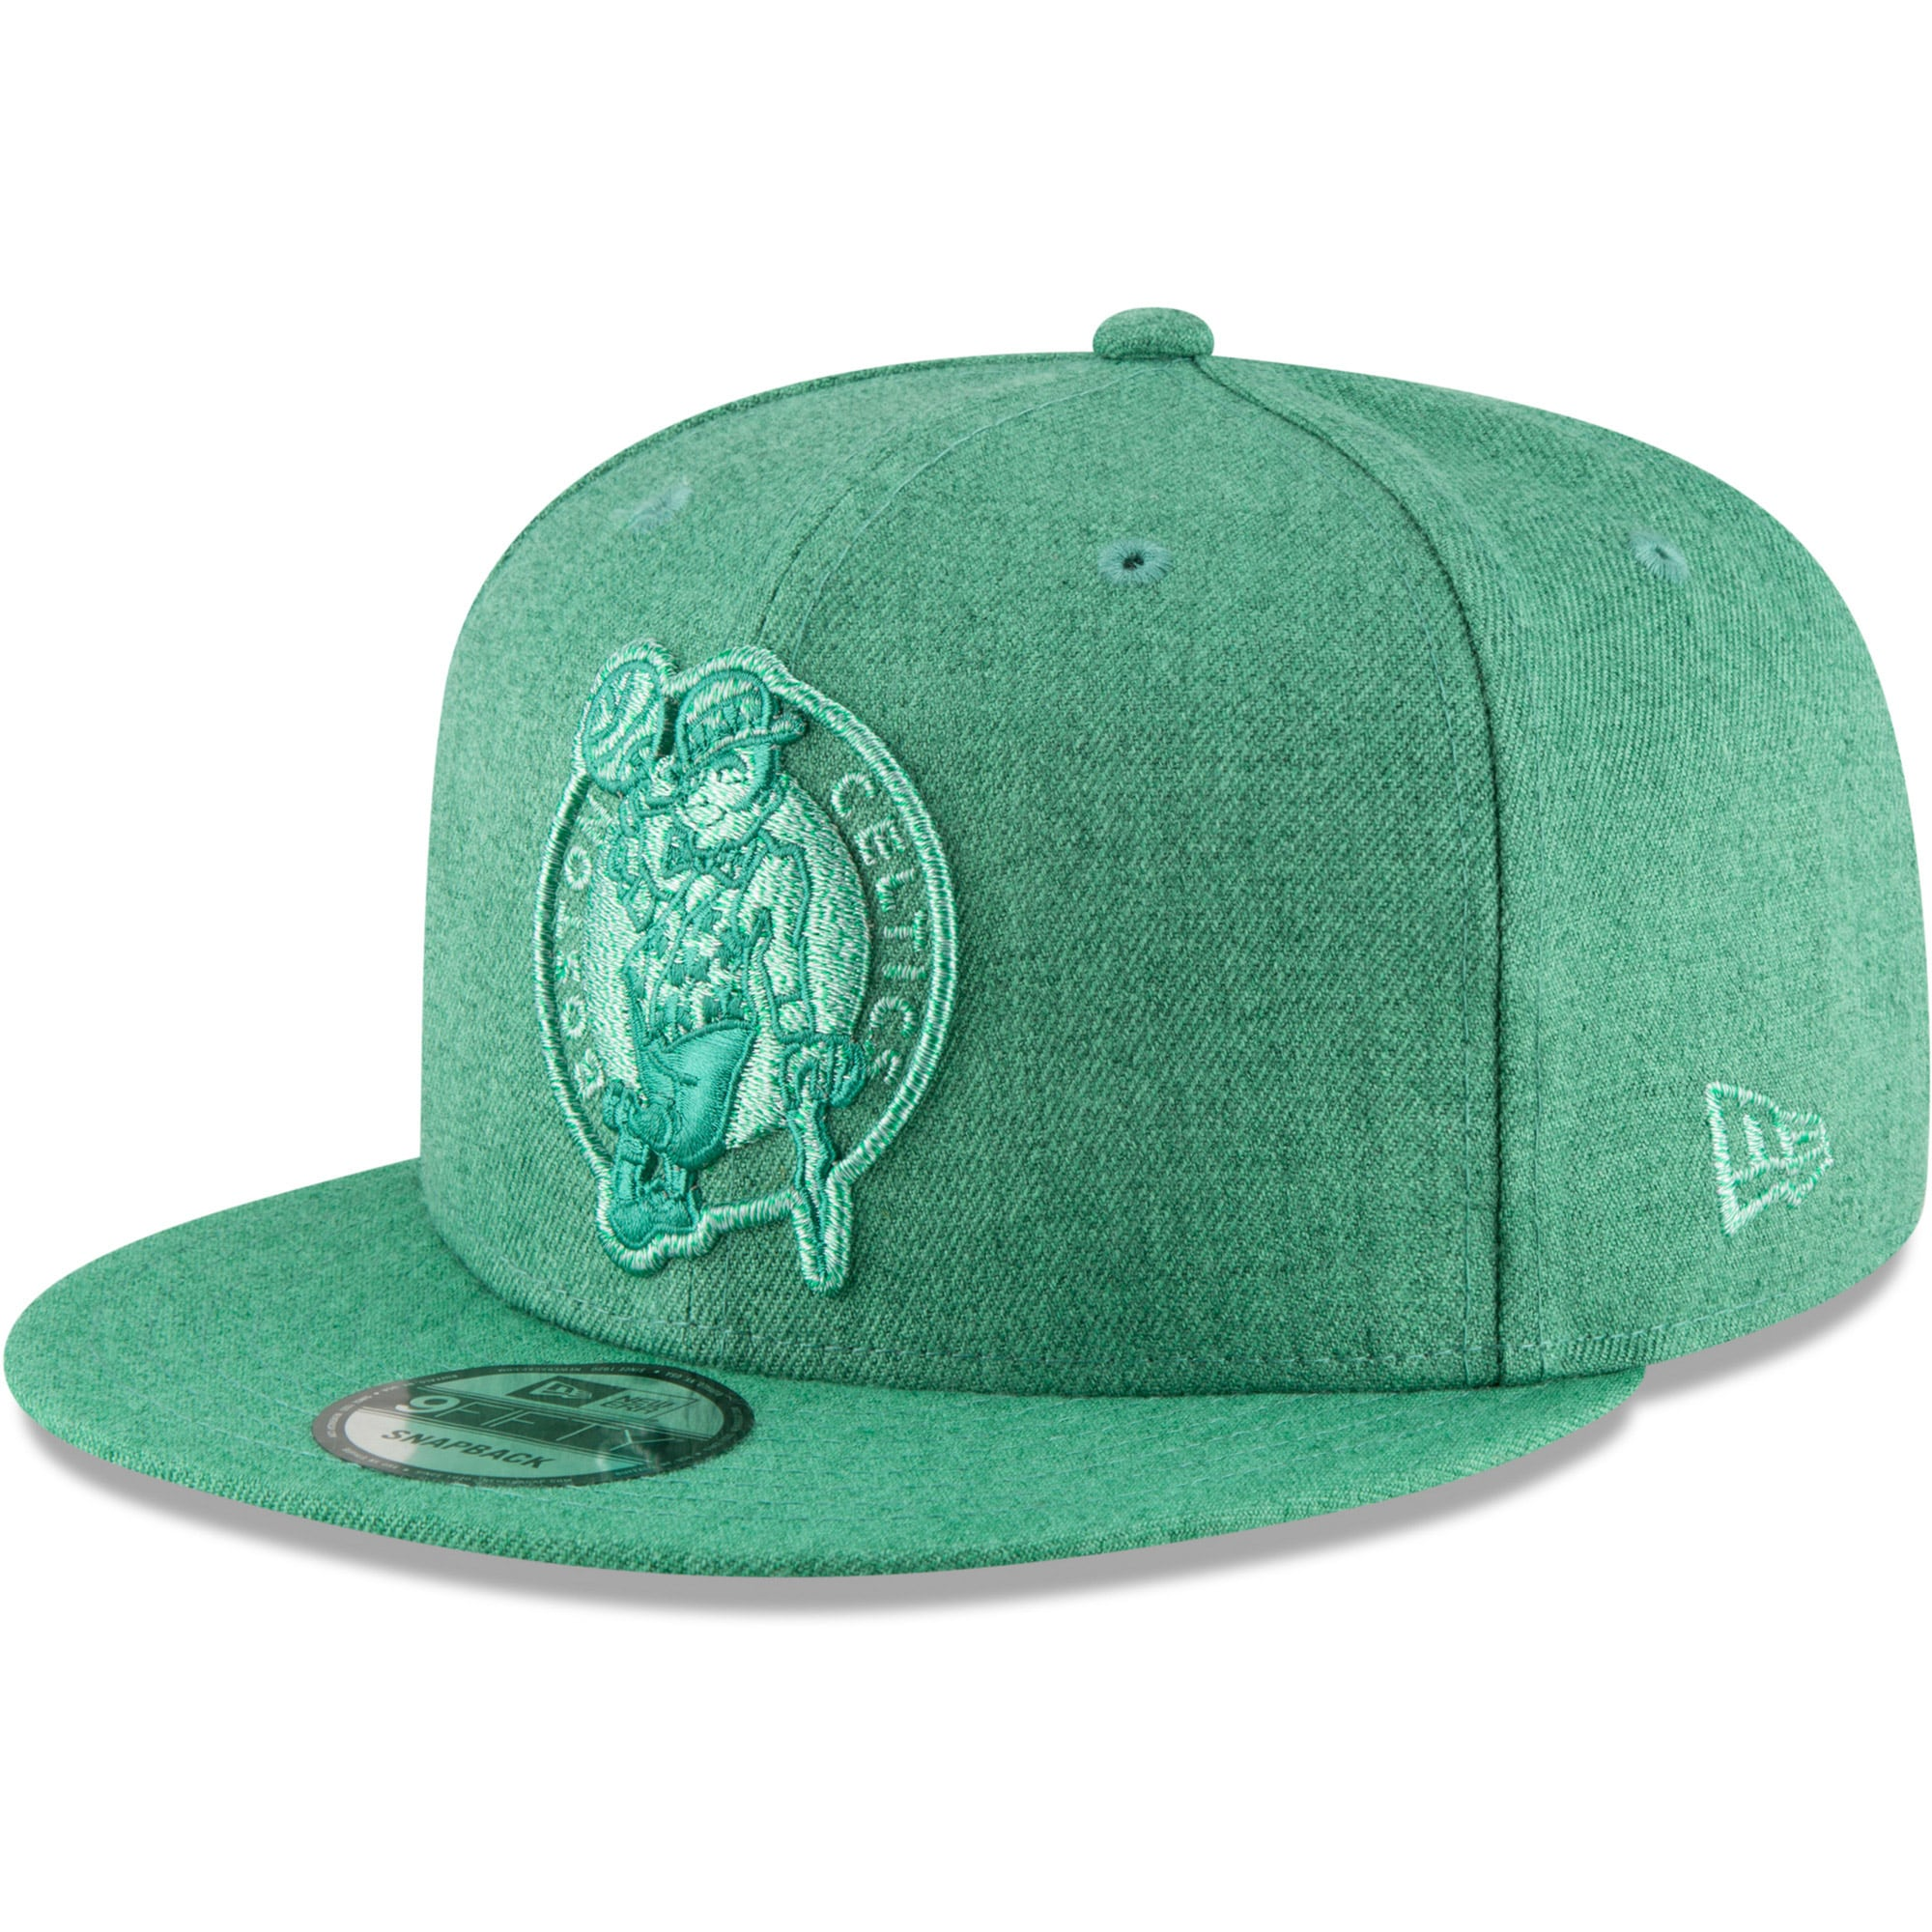 Boston Celtics New Era Twisted Frame 9FIFTY Adjustable Hat - Kelly Green